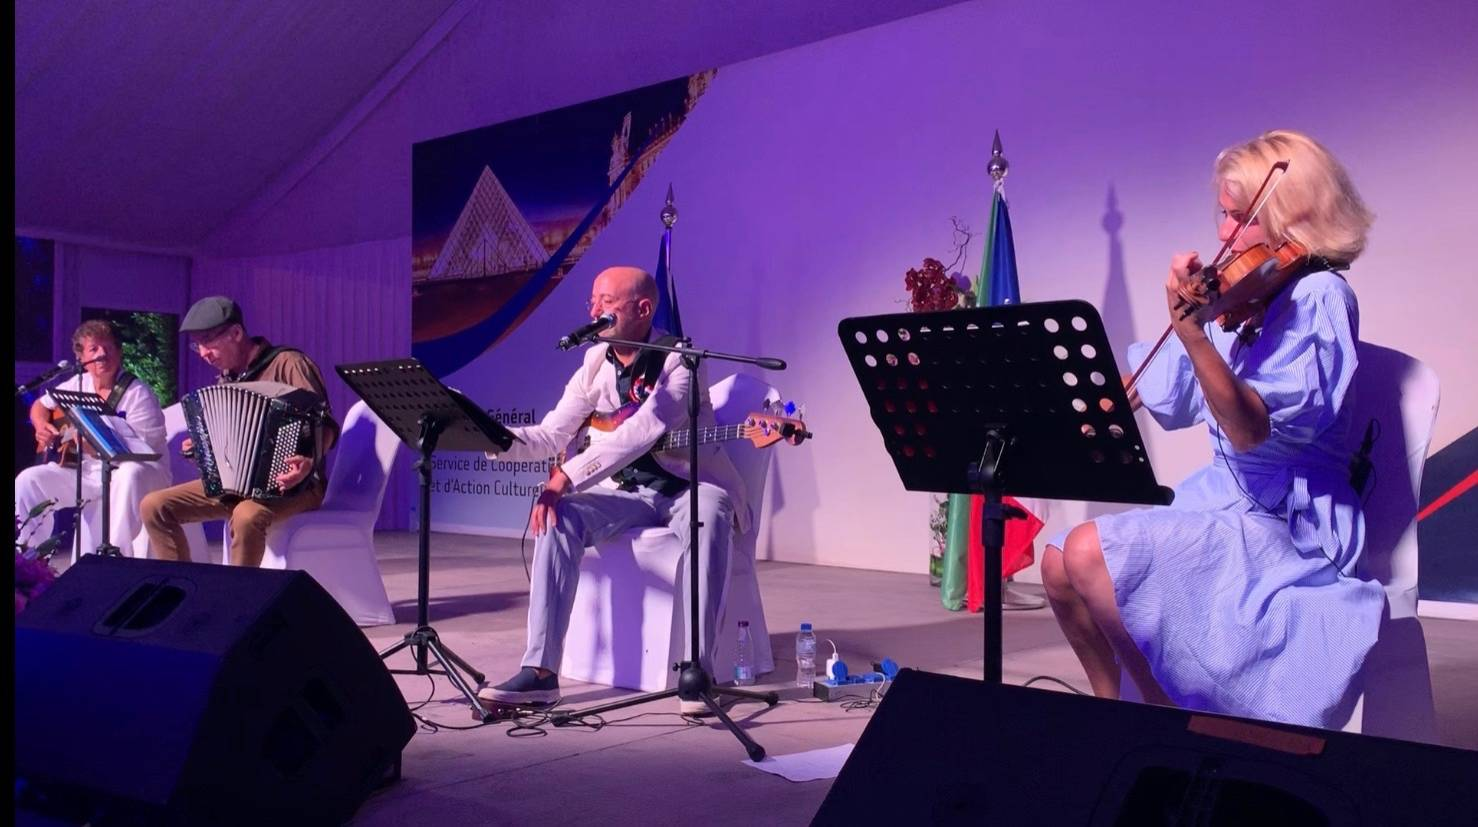 French music played at the 14th of July celebration at the residence of the French Consul General. — SG photos by Abdulaziz Hammad